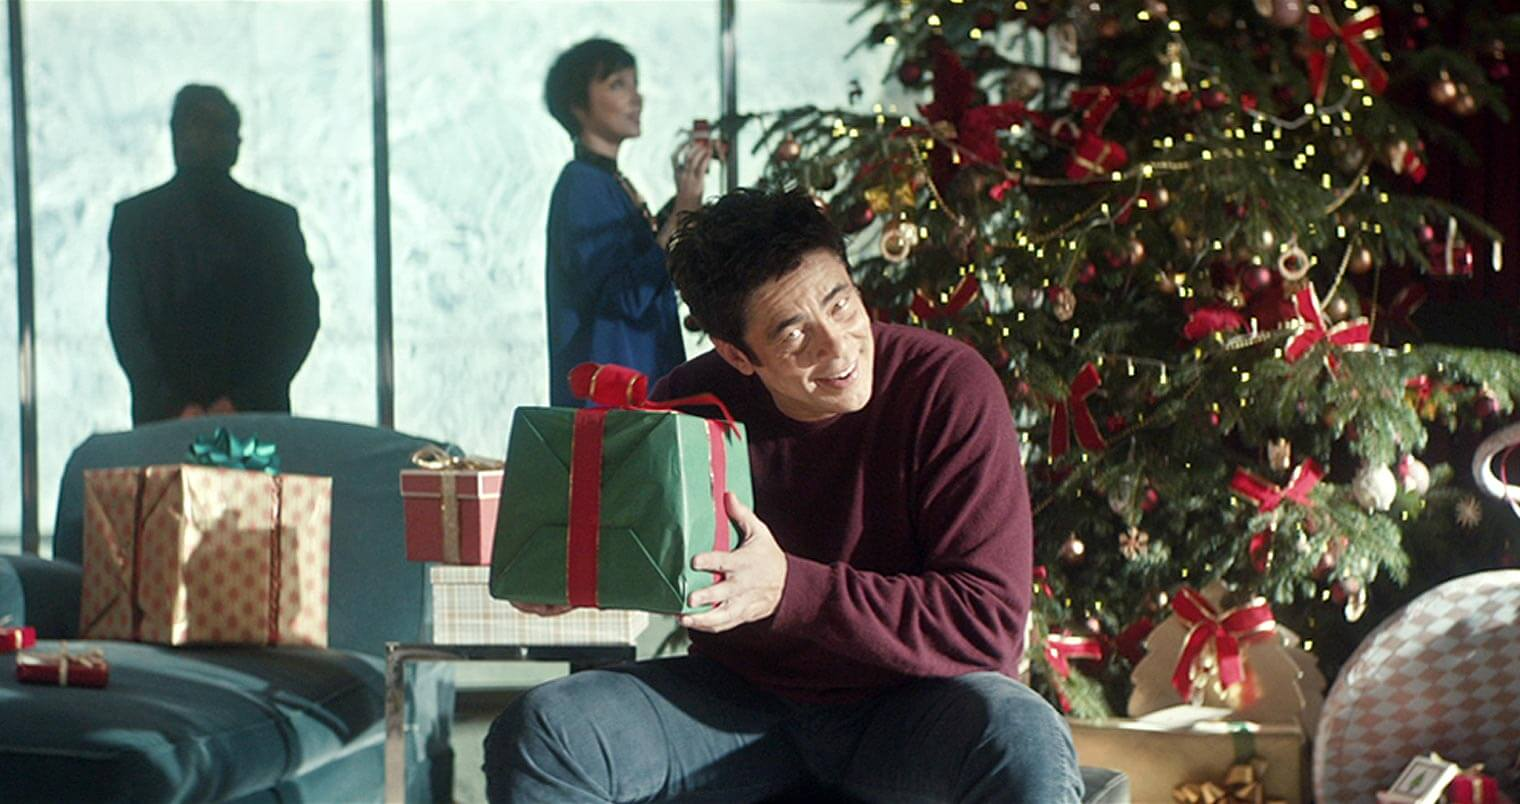 Whos In The New Heineken Christmas Commercial 2020 New Heineken Holiday Commercial Stars Benicio Del Toro   Chilled